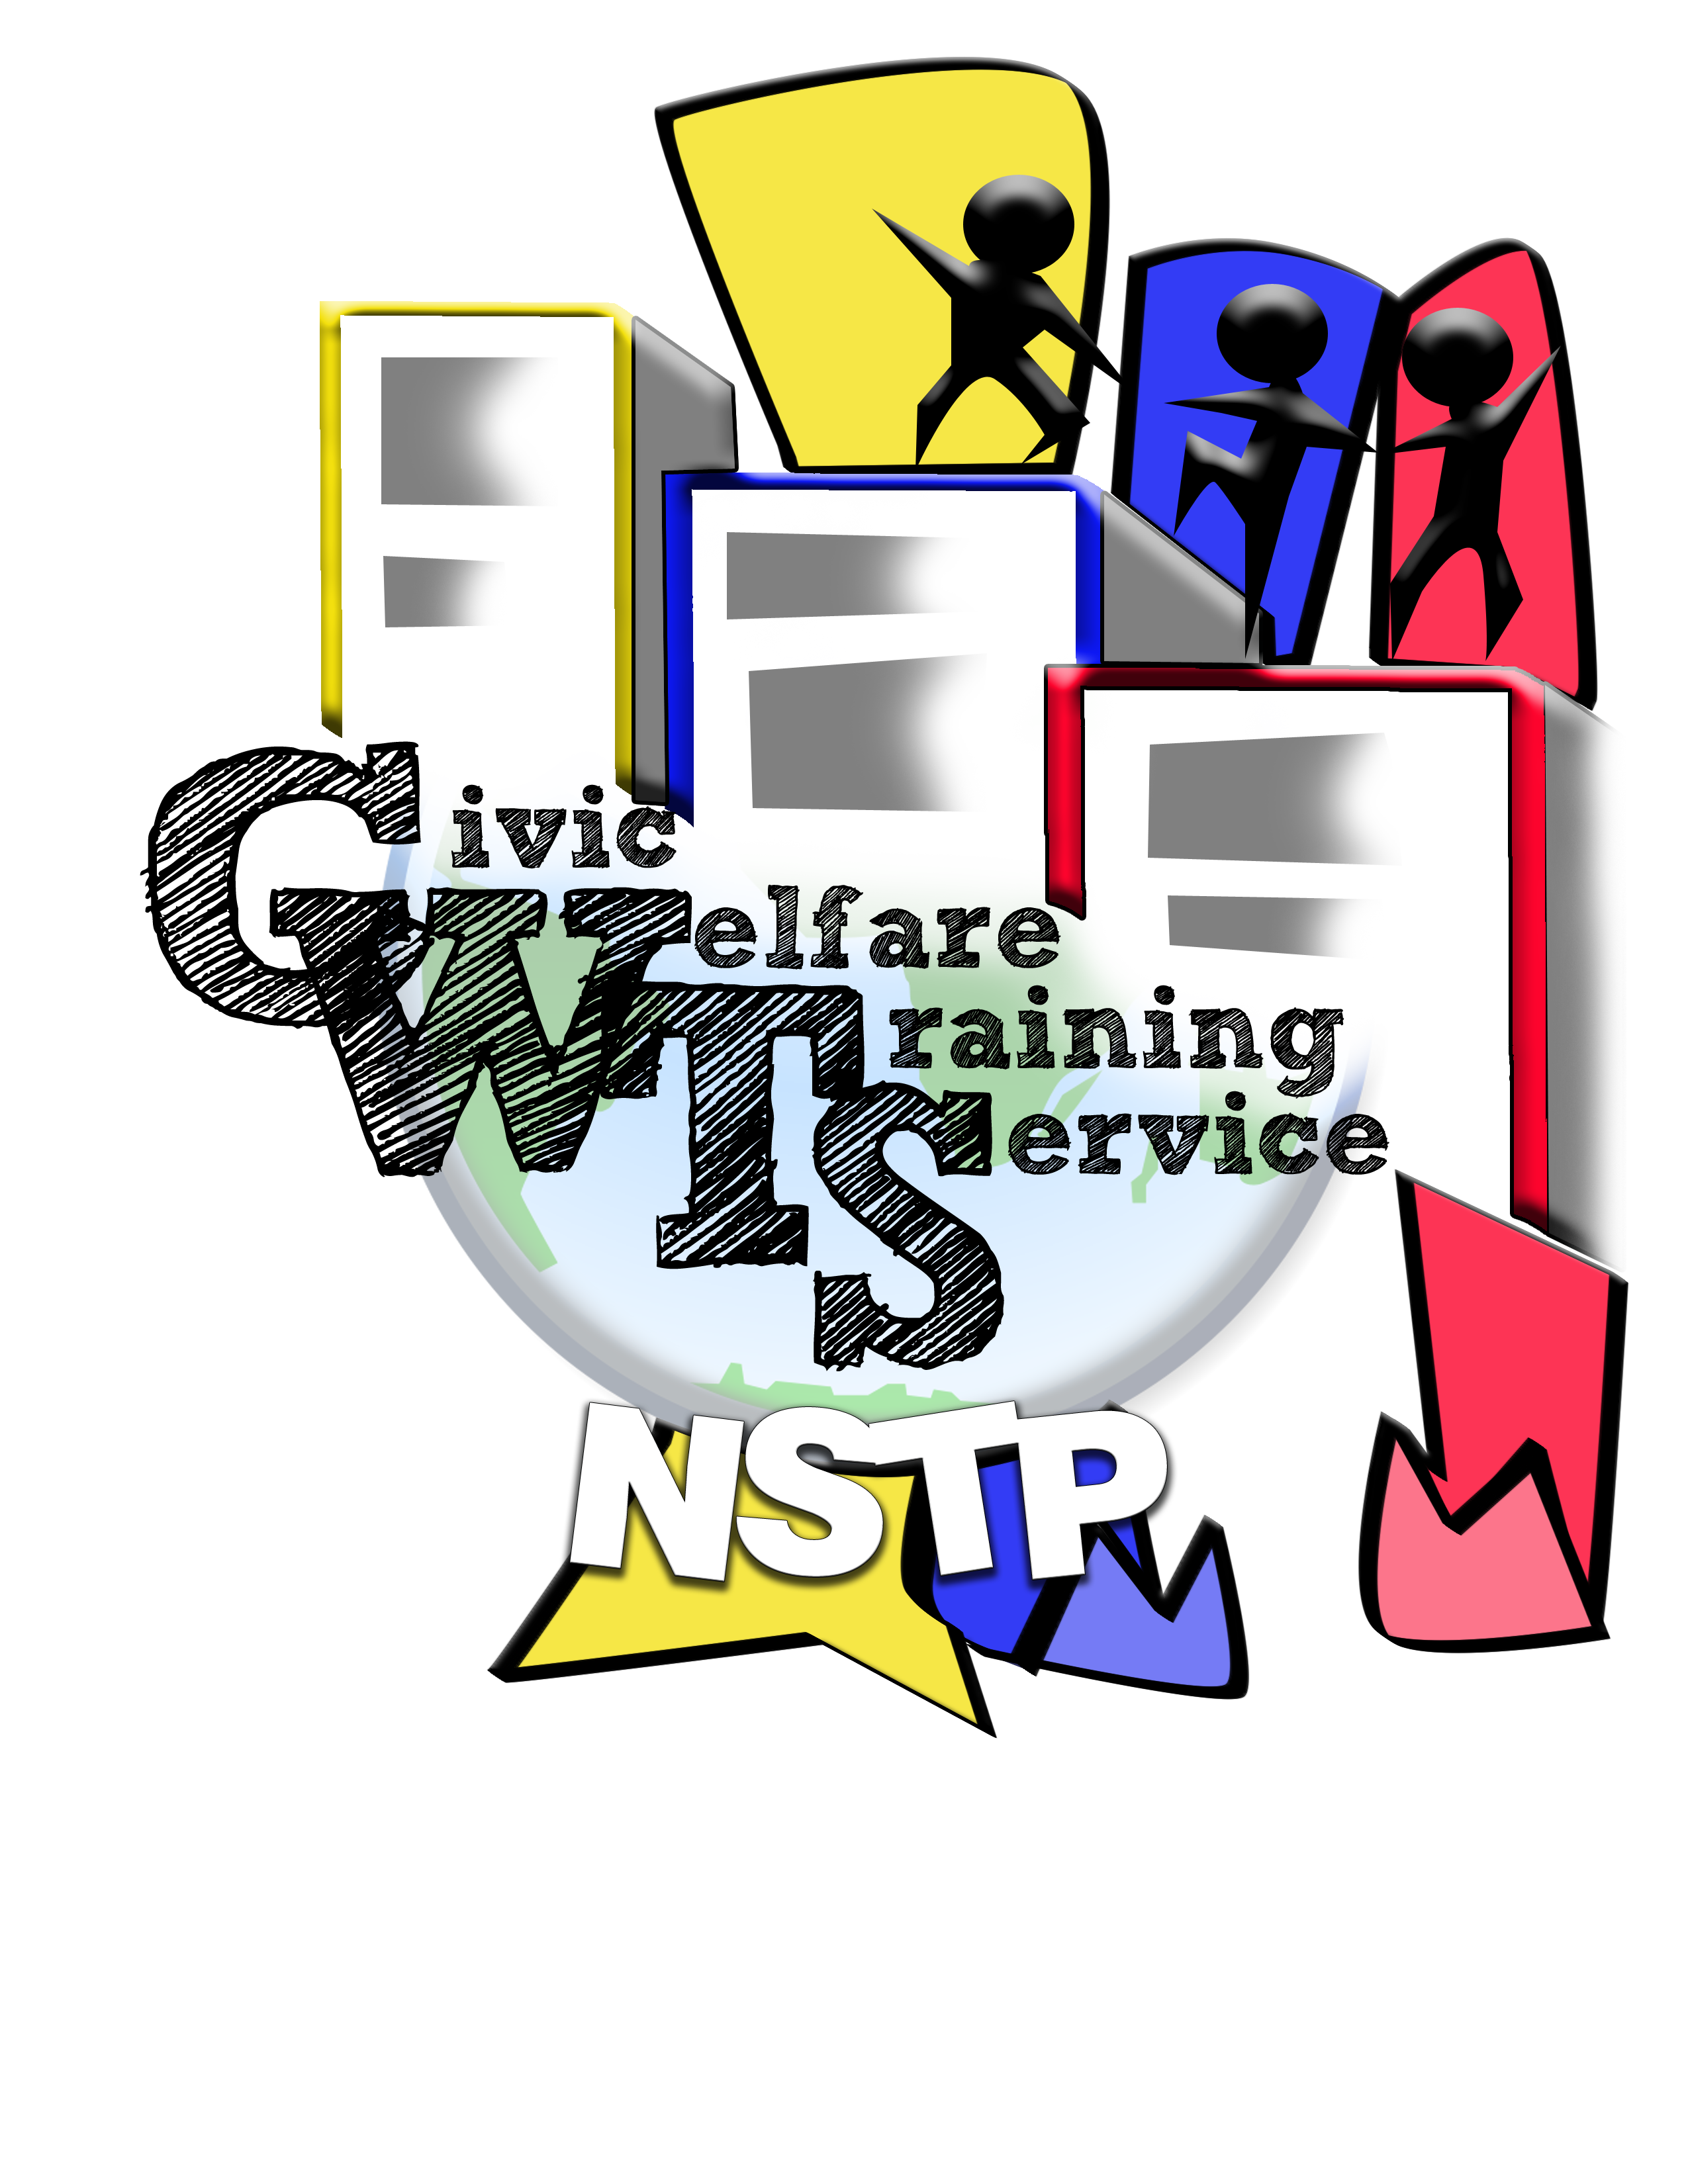 Nstp coursework academic writing. Writer clipart narrative report